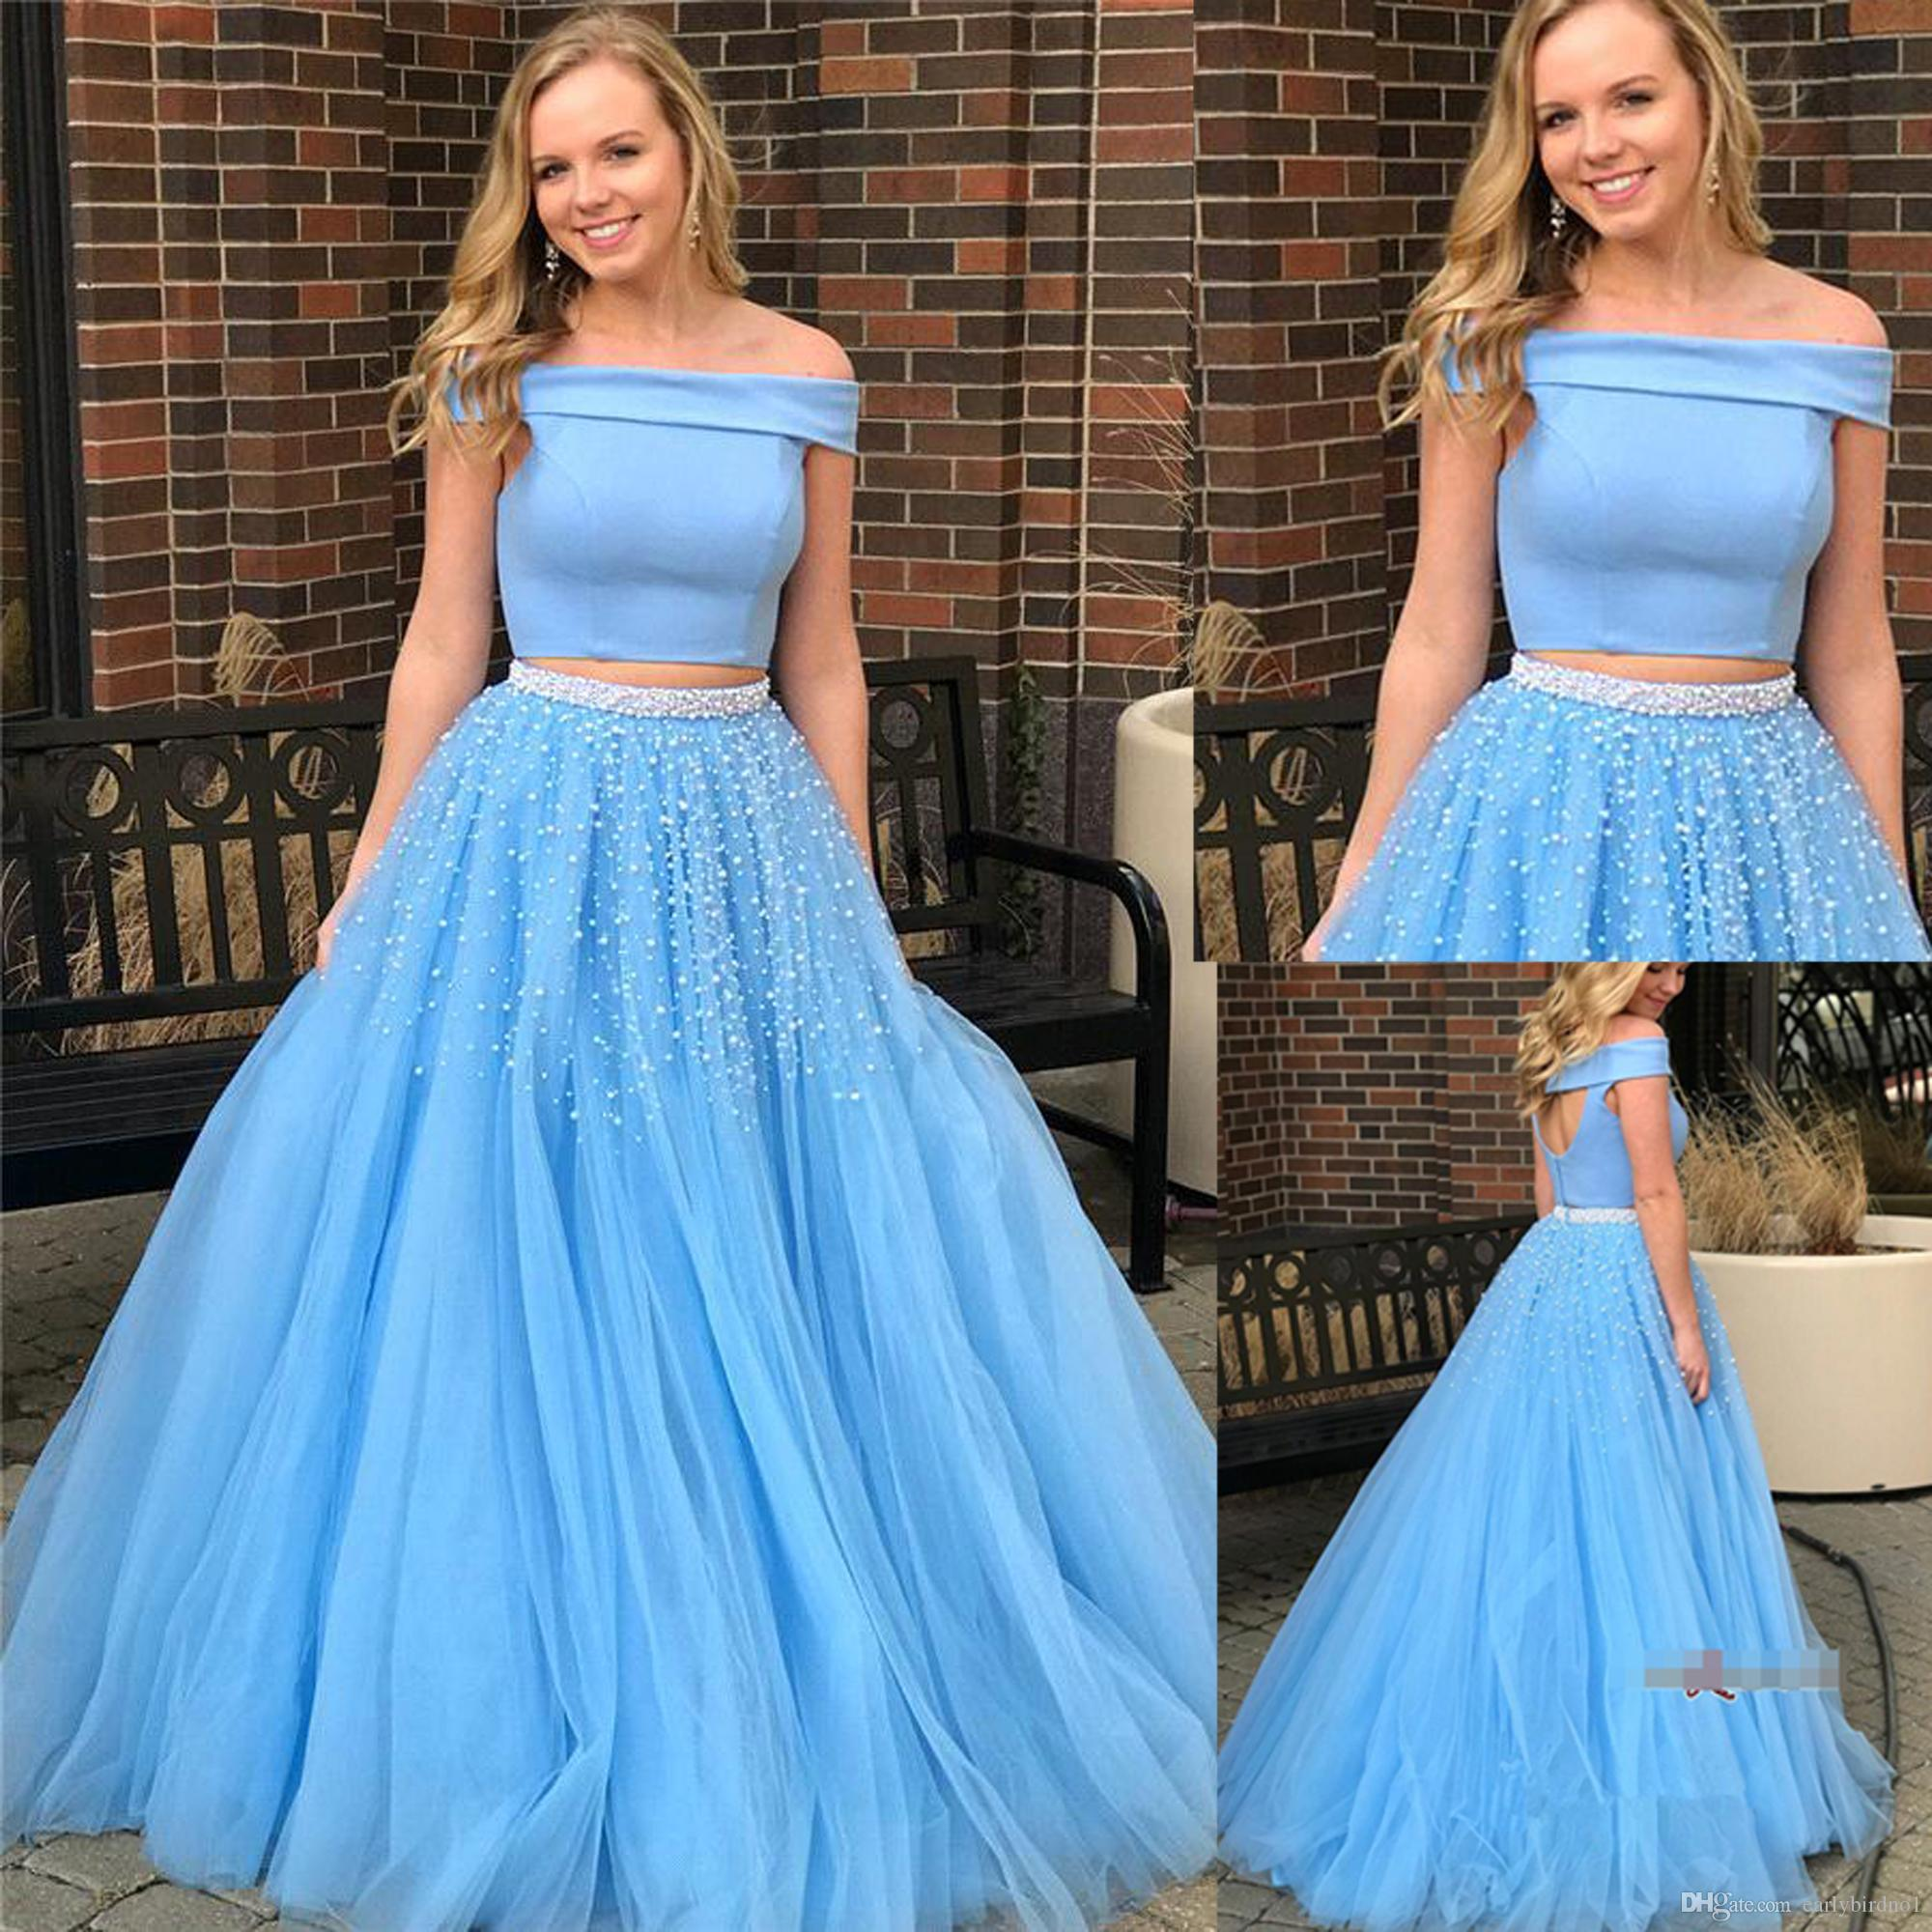 e9b73cf0221 New Sweety Long Homecoming Dresses Two Piece Baby Blue Pearl Beads Sequins  Off Shoulder Floor Length 2018 Prom Dress BA9646 Grad Dresses Mermaid  Dresses ...